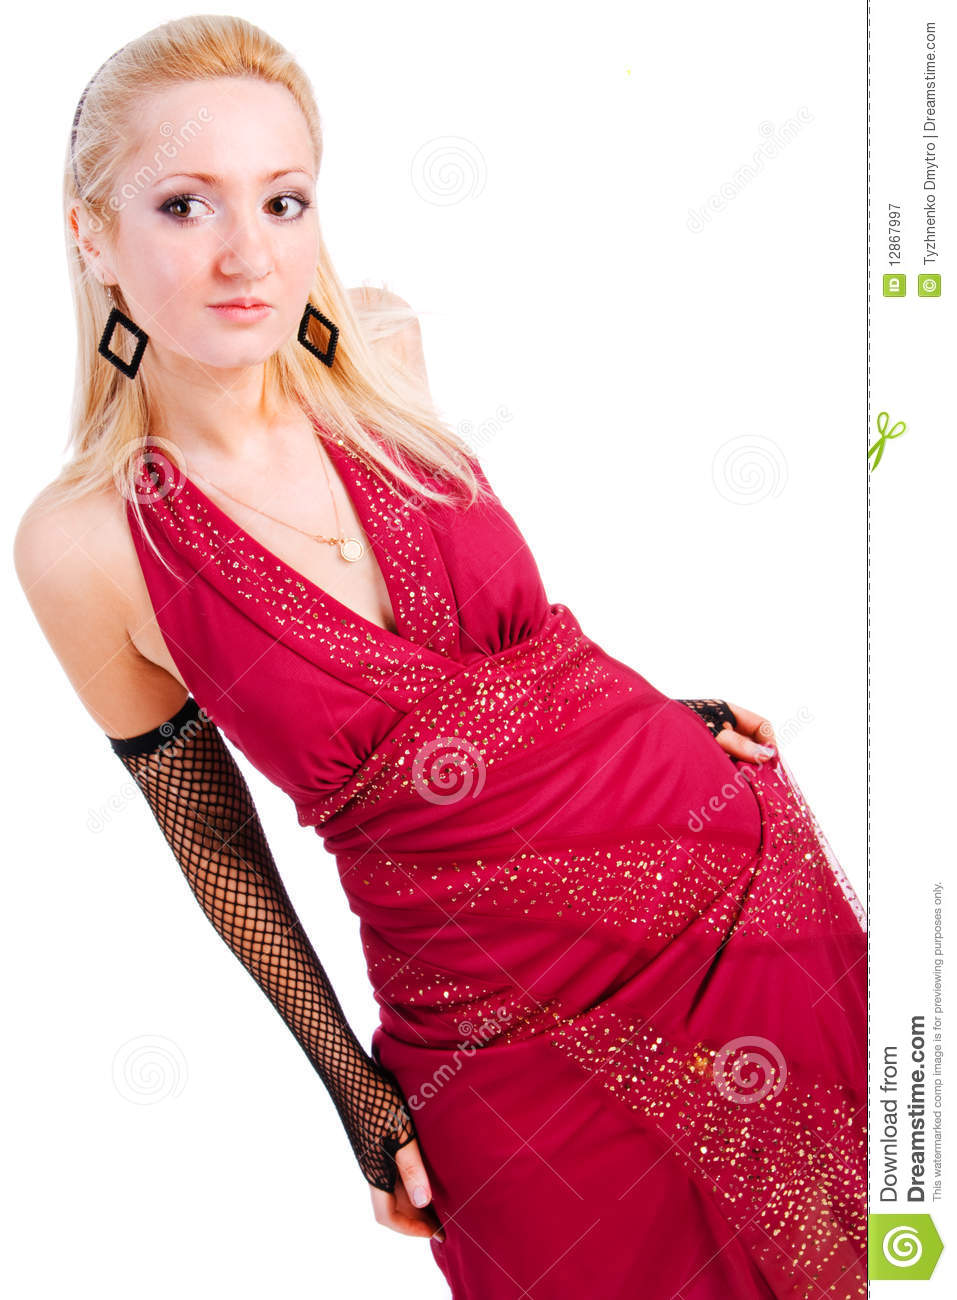 Beautiful charming young girl in red dress royalty free stock photography image 12867997 - Charming teenage girls image ...